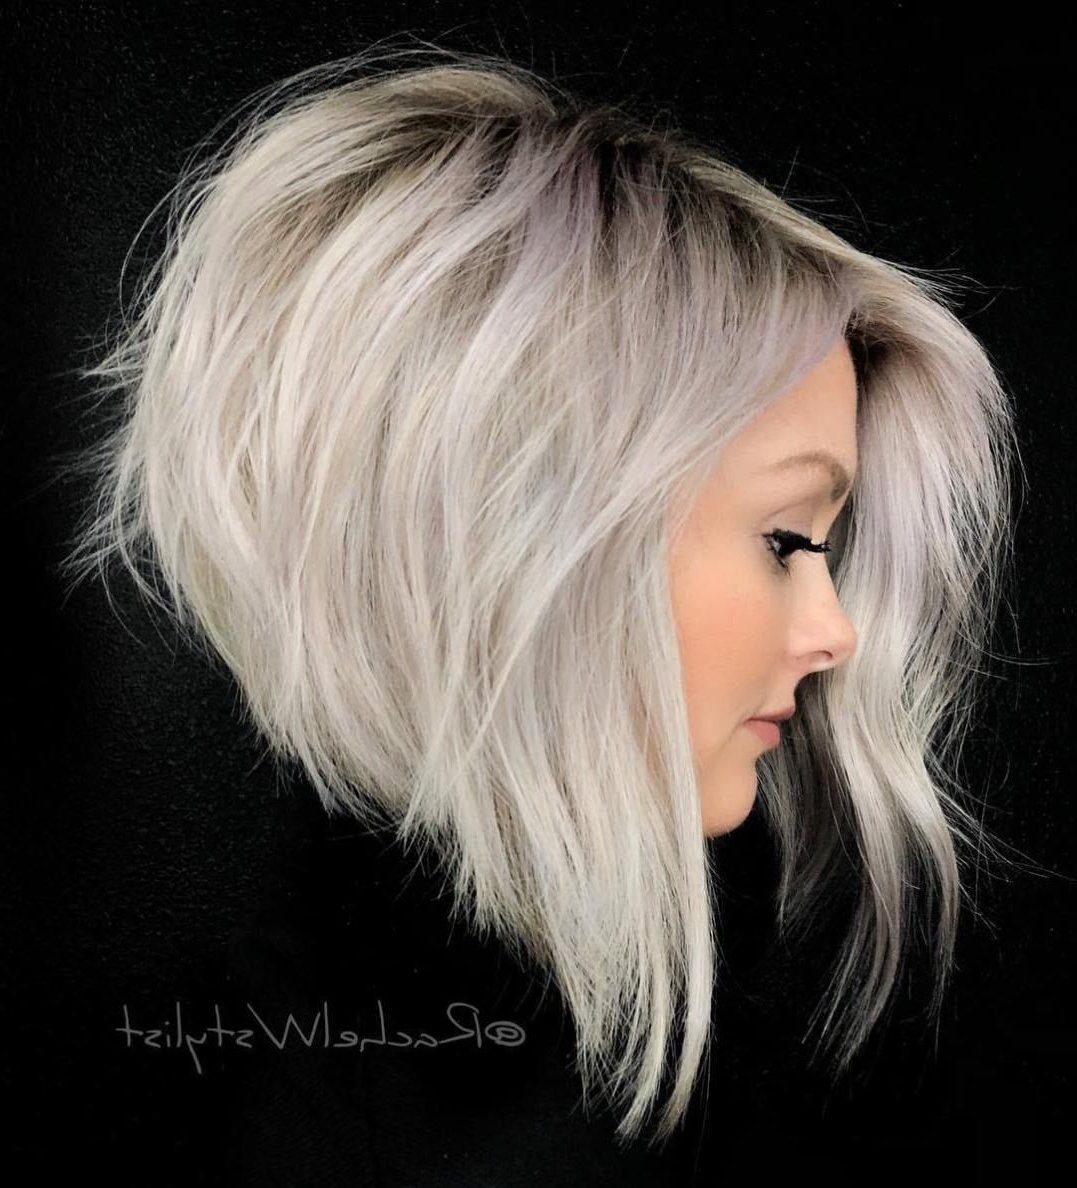 70 Overwhelming Ideas For Short Choppy Haircuts | Diy Inside Steeply Angled Razored Asymmetrical Bob Hairstyles (View 14 of 20)